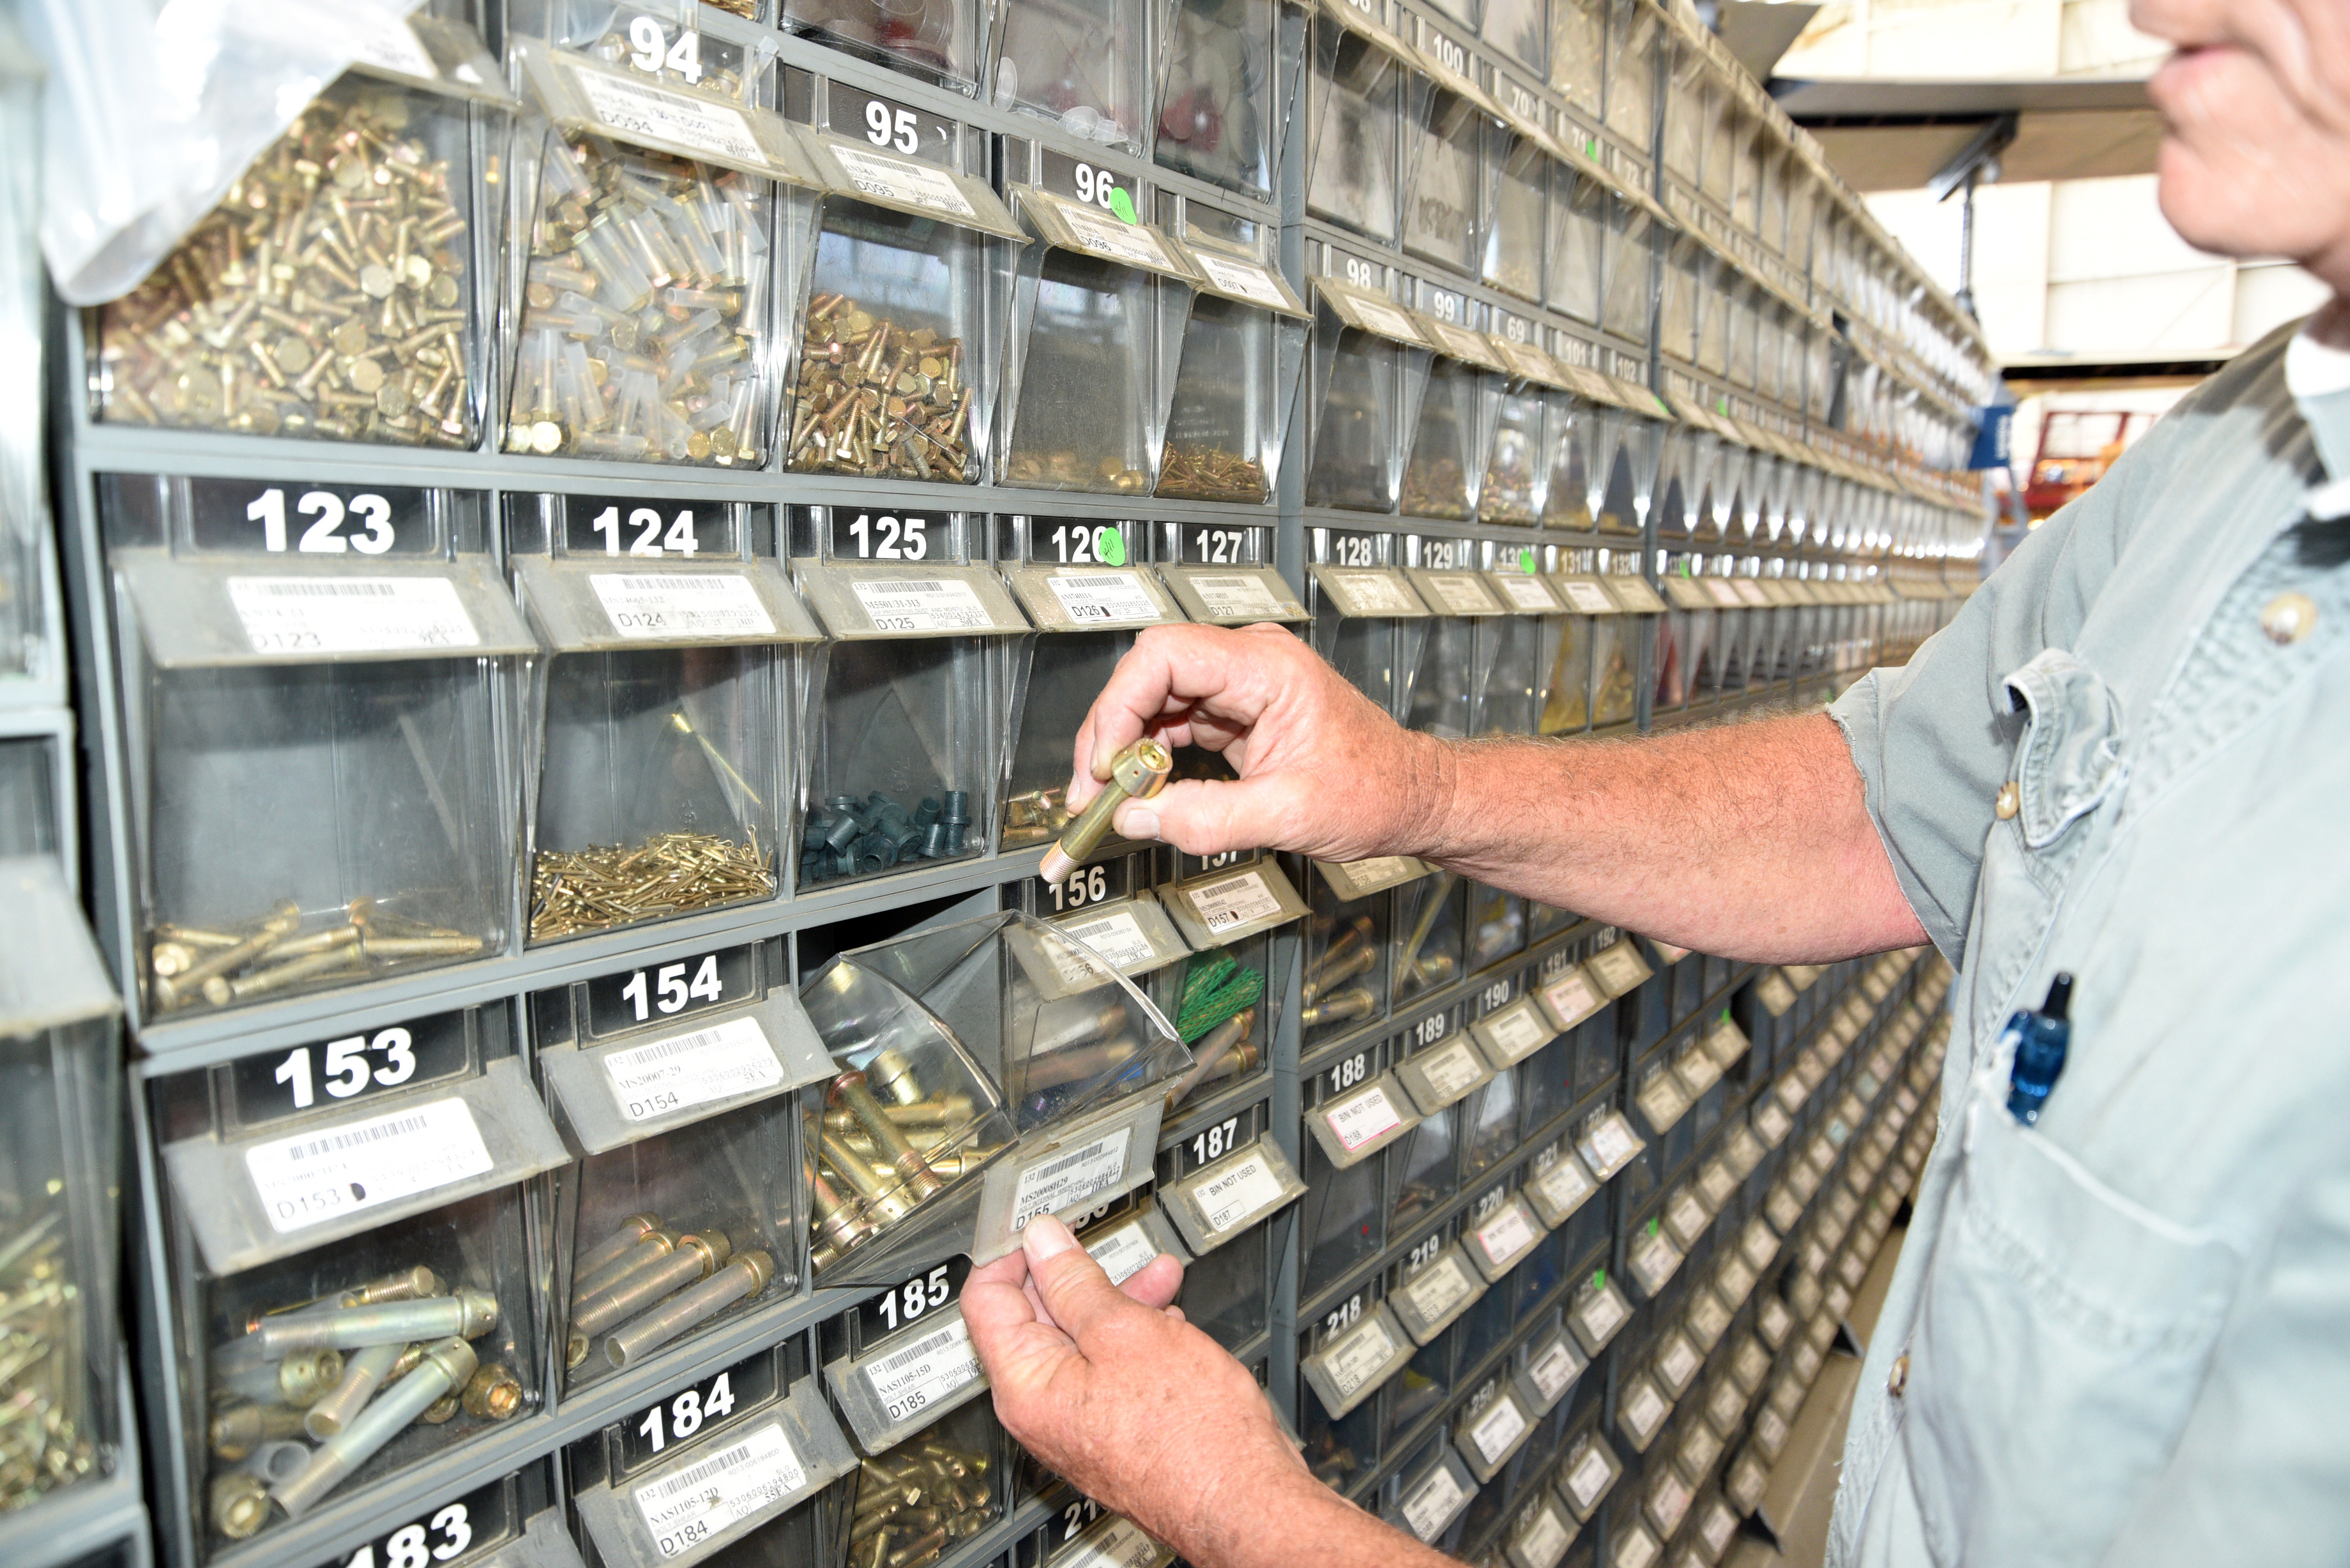 Parts and materials worker browses shelving containing various supplies.